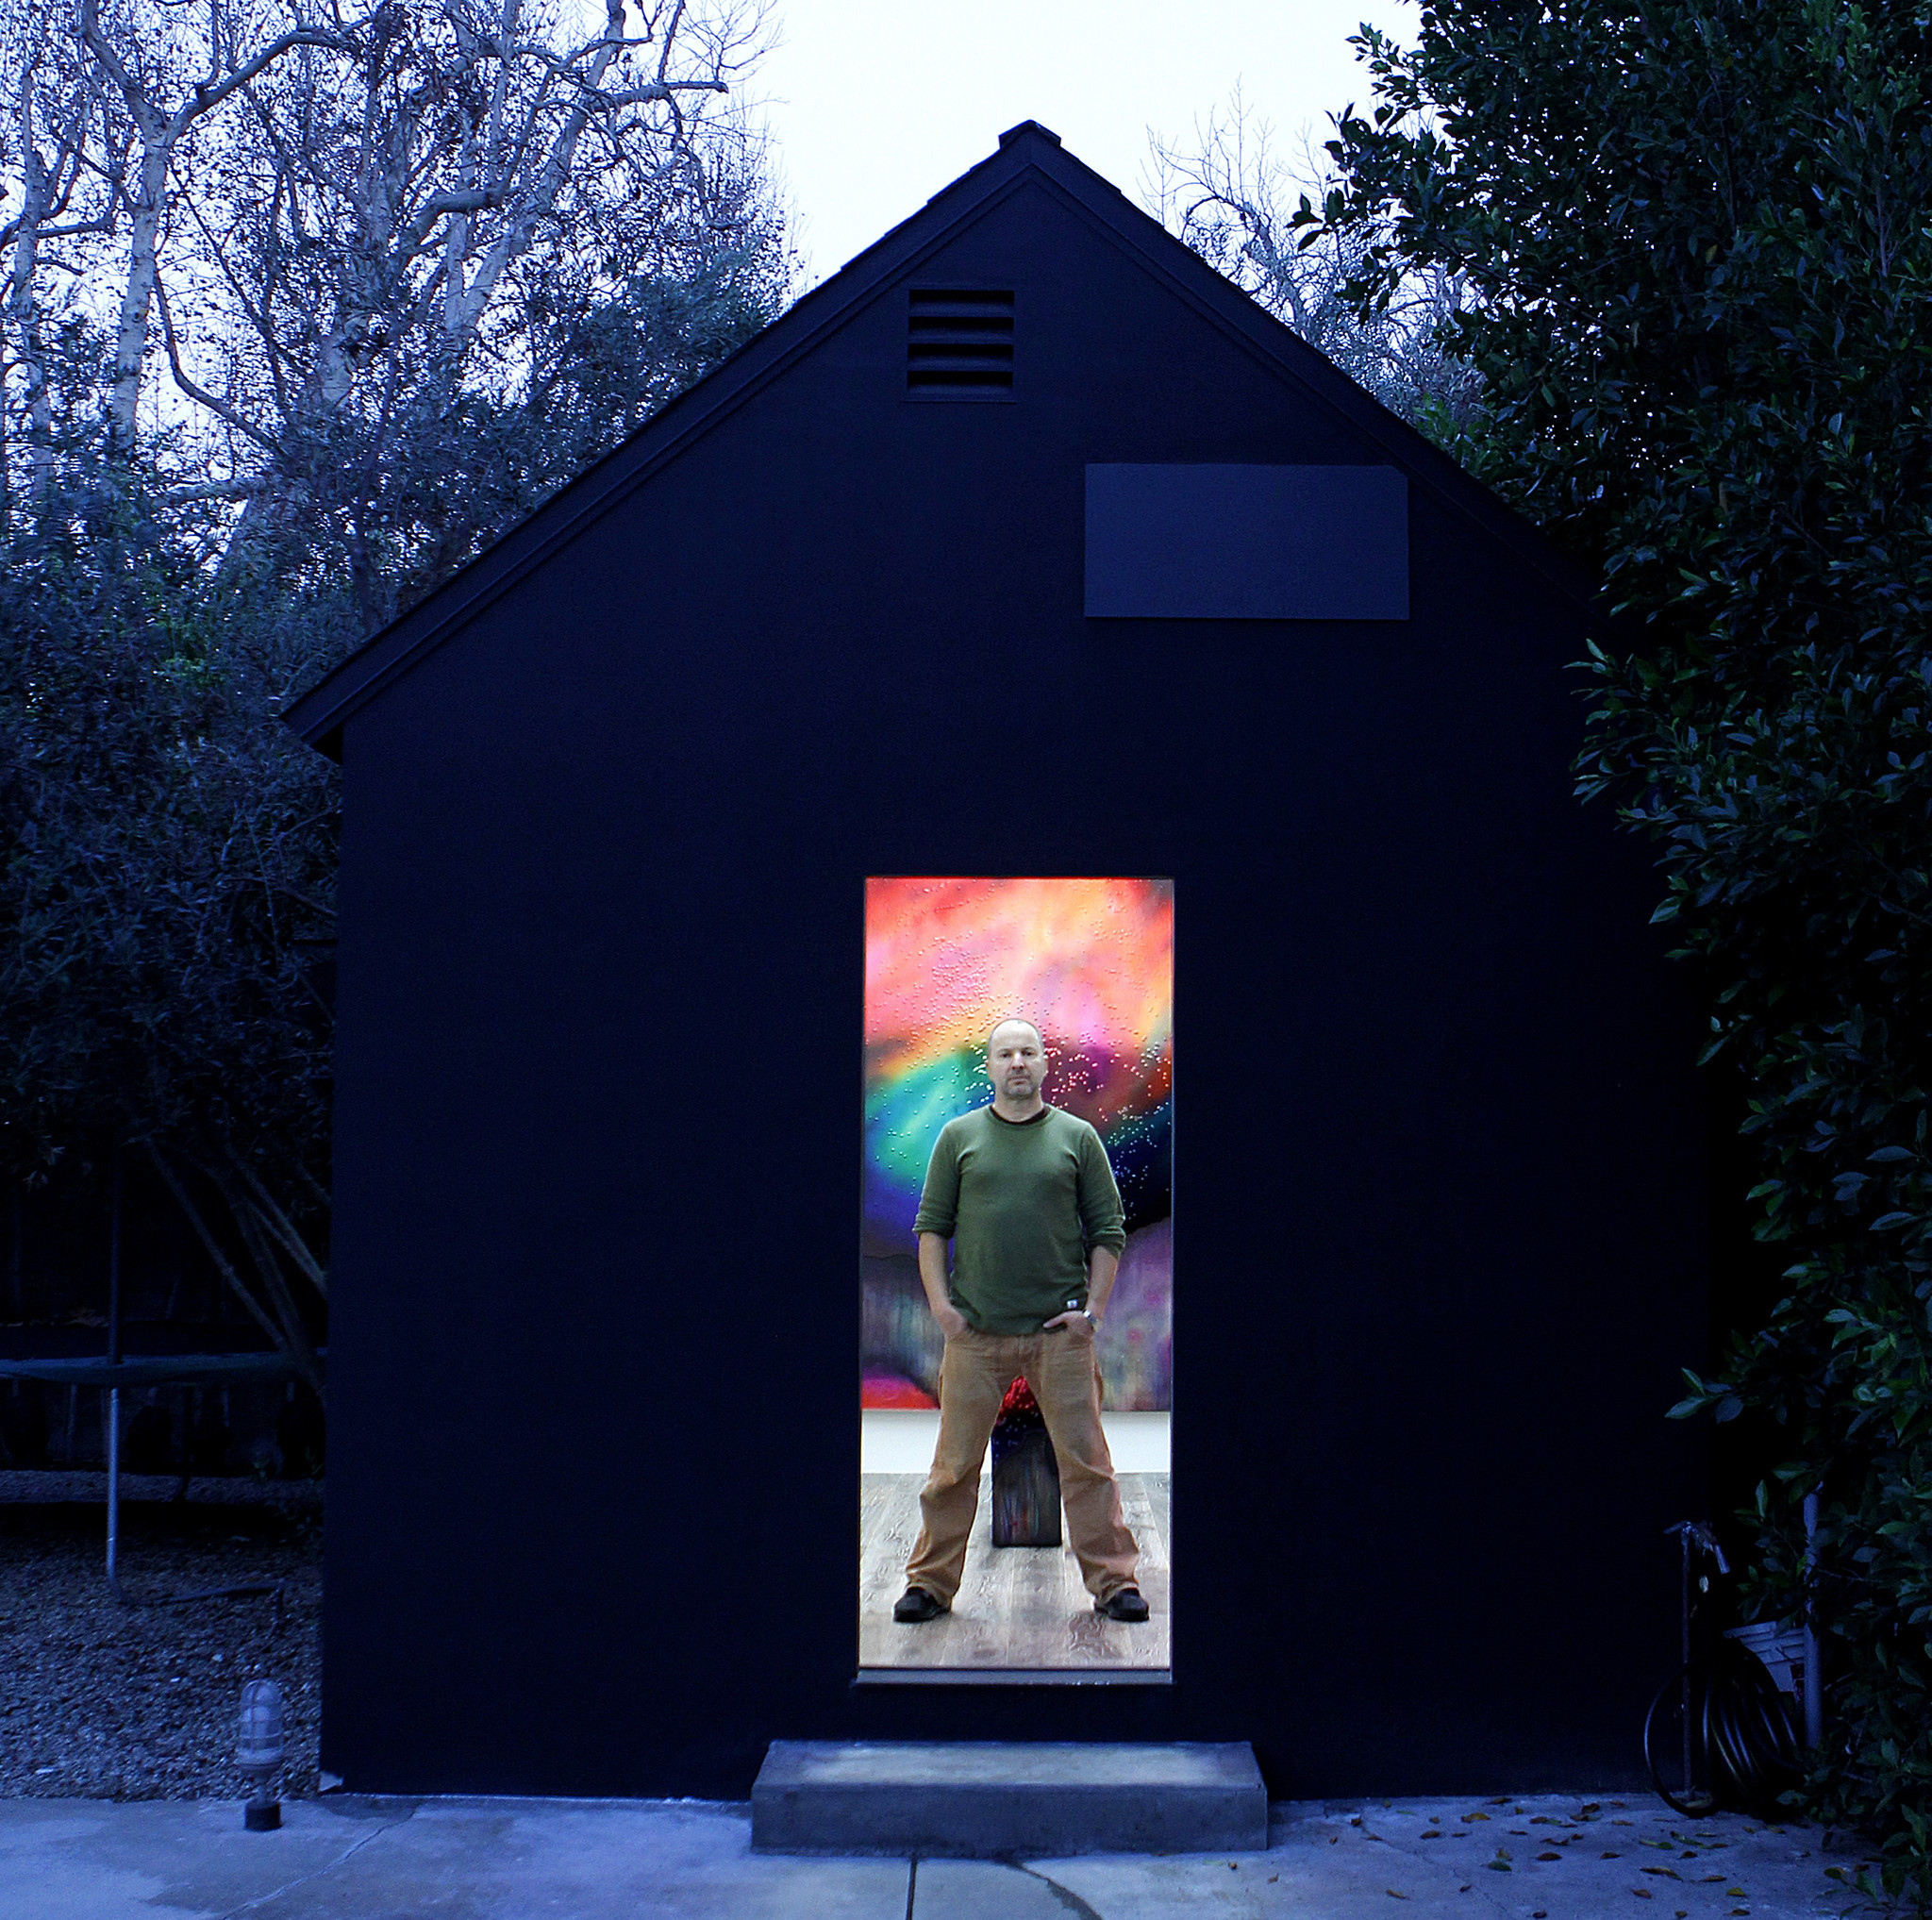 An art gallery in Los Angeles modeled on the Unabomber ...